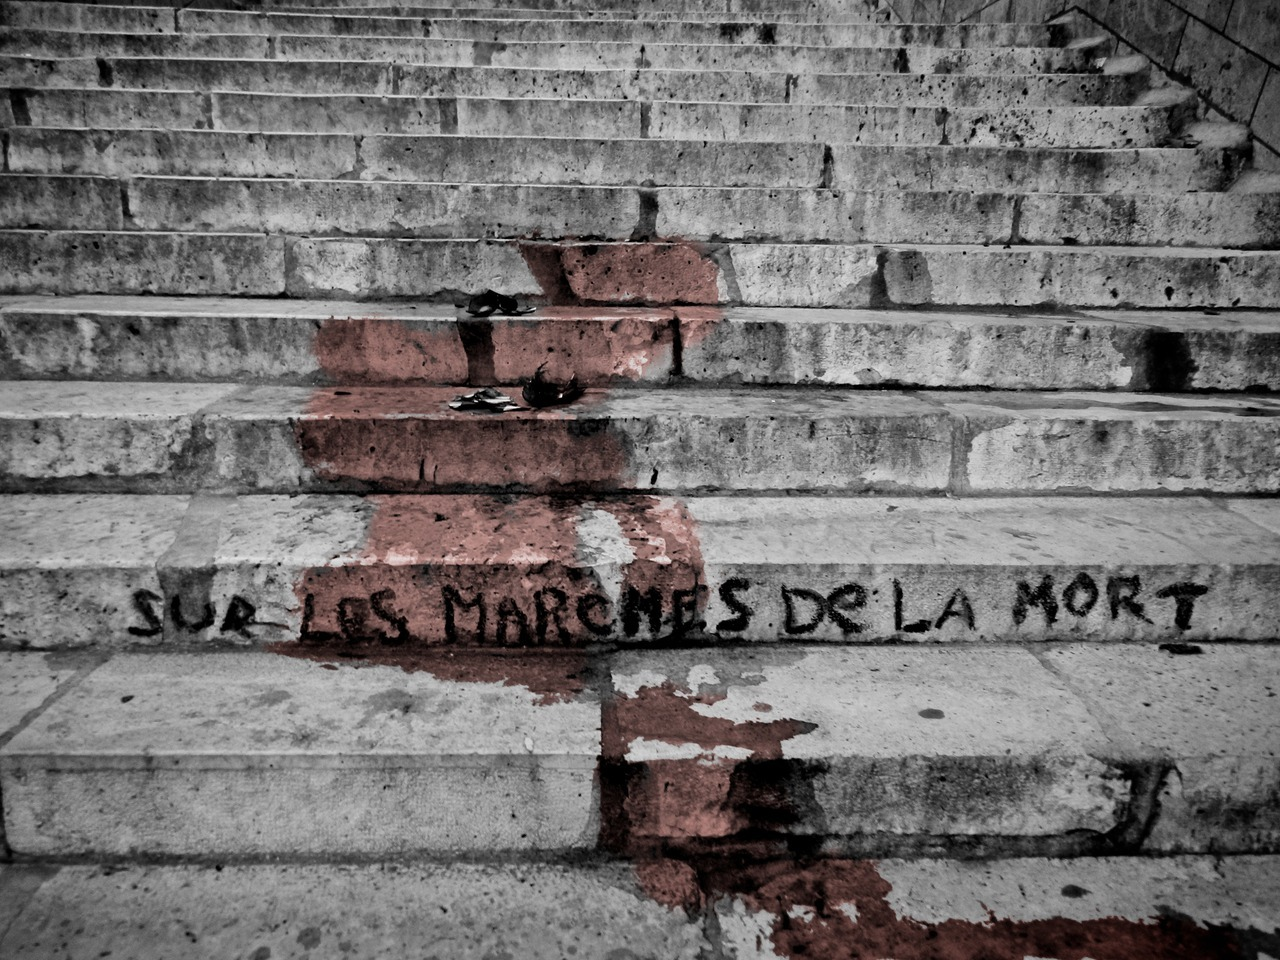 'Sur Les Marches de la Mort', Paris, France, August 2012